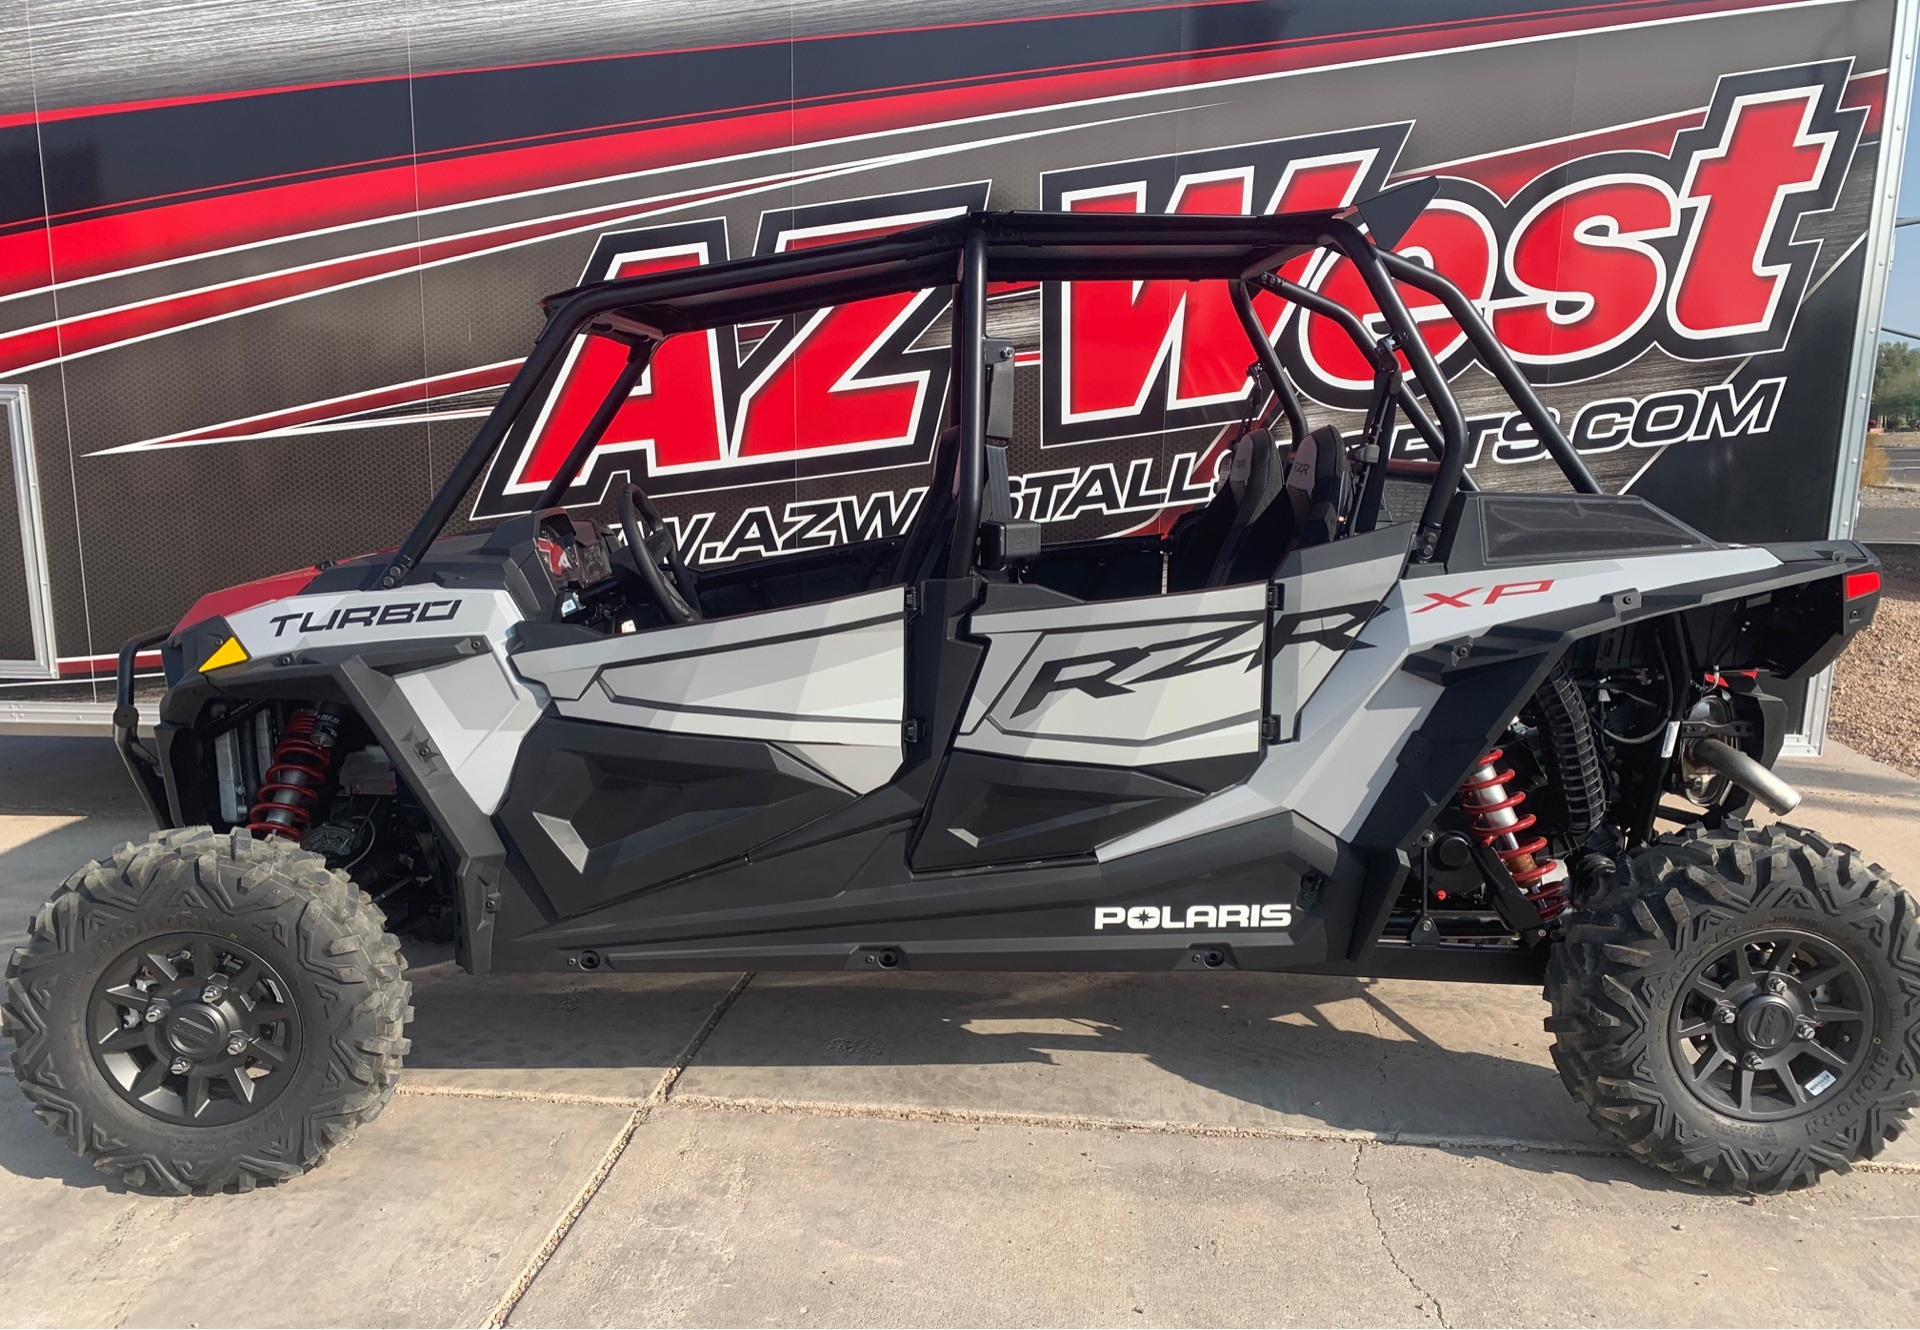 2021 Polaris RZR XP 4 Turbo in Lake Havasu City, Arizona - Photo 1